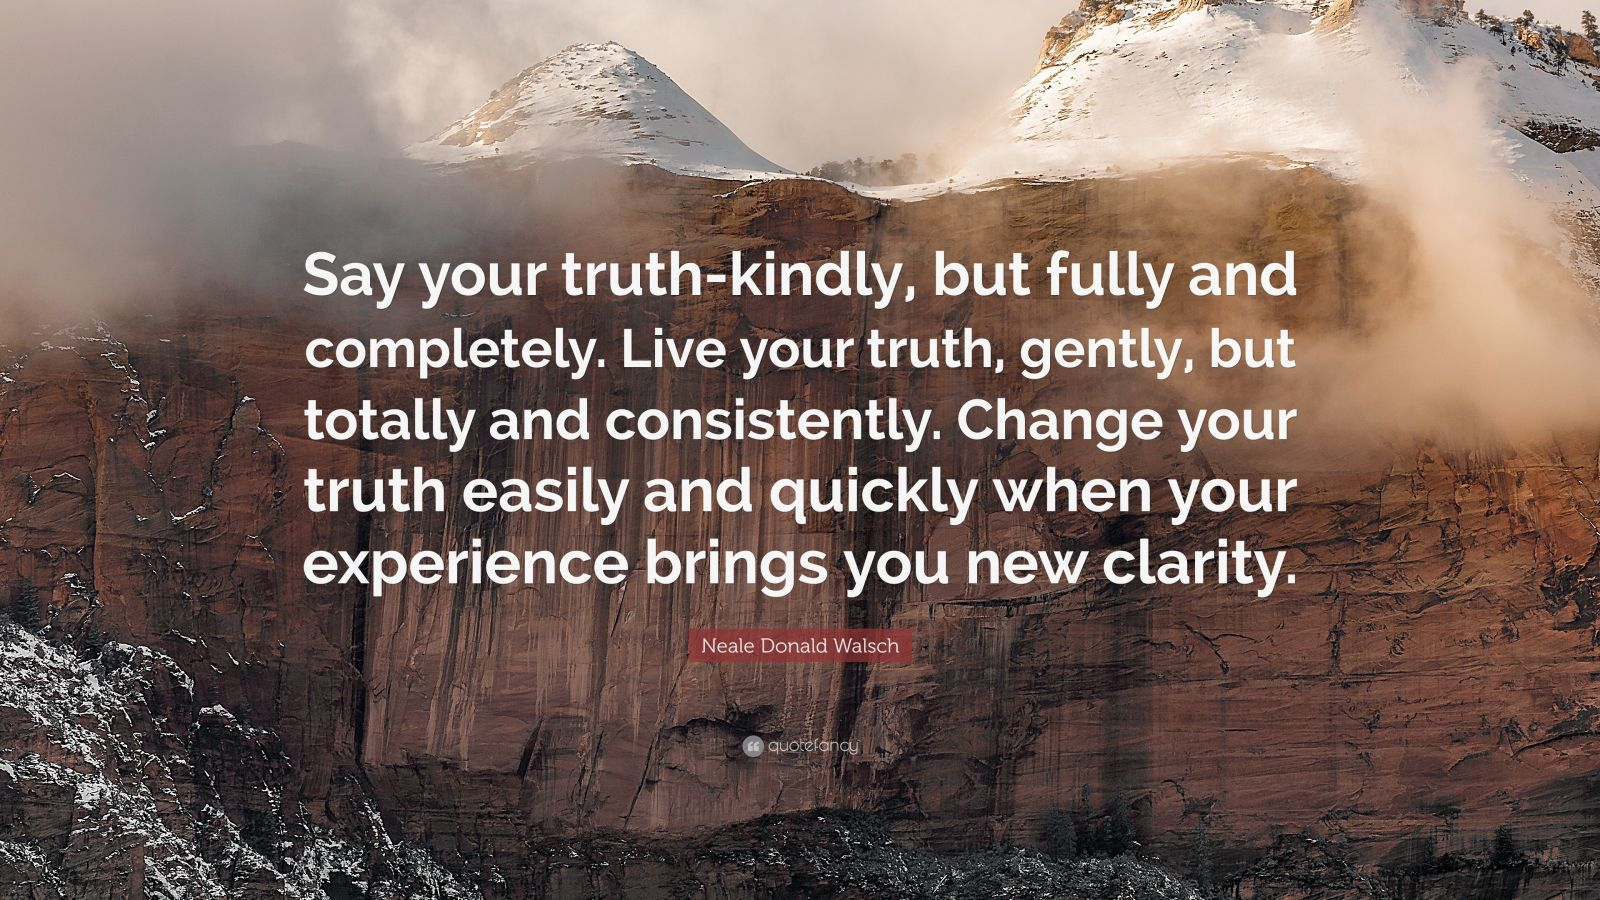 """Neale Donald Walsch Quote: """"Say your truth-kindly, but fully and completely. Live your truth, gently, but totally and consistently. Change your truth easily and quickly when your experience brings you new clarity."""""""